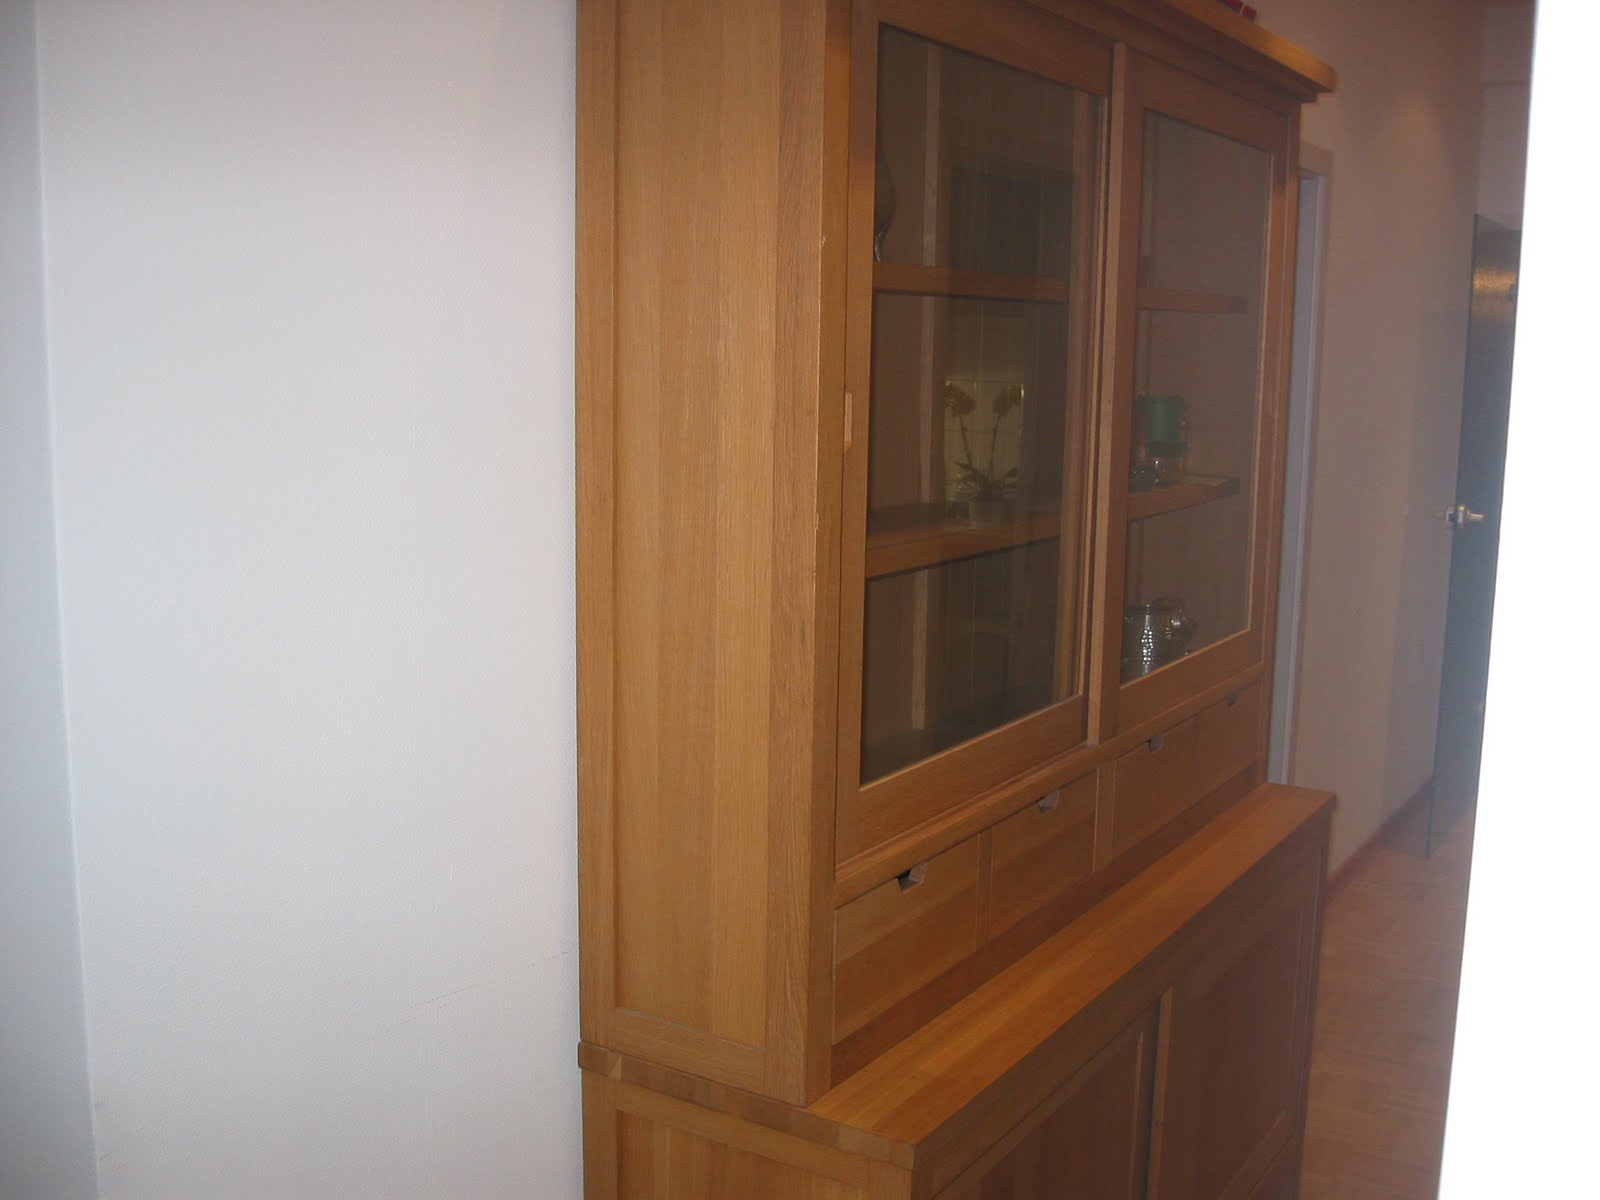 Too good to chuck buffet oak buffet vitrine eiche for Sideboard vitrine